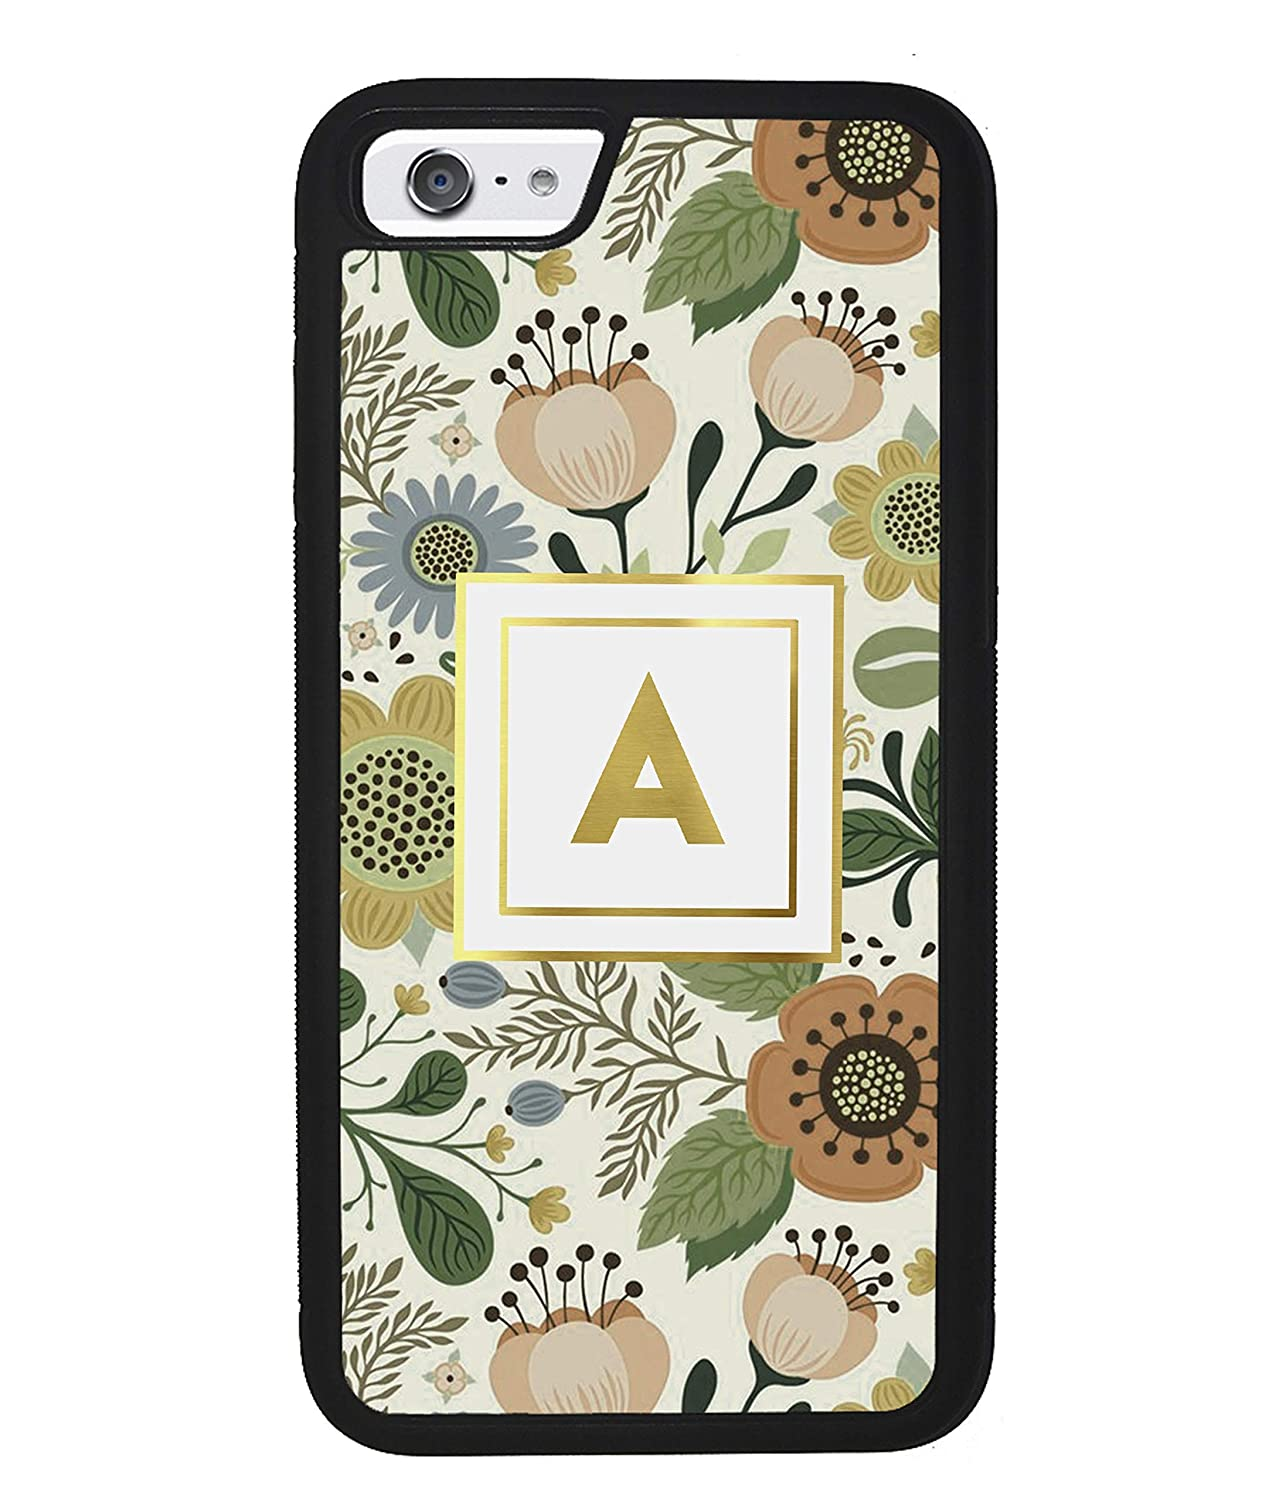 Amazon Com Vintage Flower Pattern Personalized Initial Apple Iphone Black Rubber Phone Case Iphone 11 Pro Max Iphone X Iphone Xs Max Iphone Xr Iphone 8 Iphone 7 Iphone 8 Plus Iphone 7